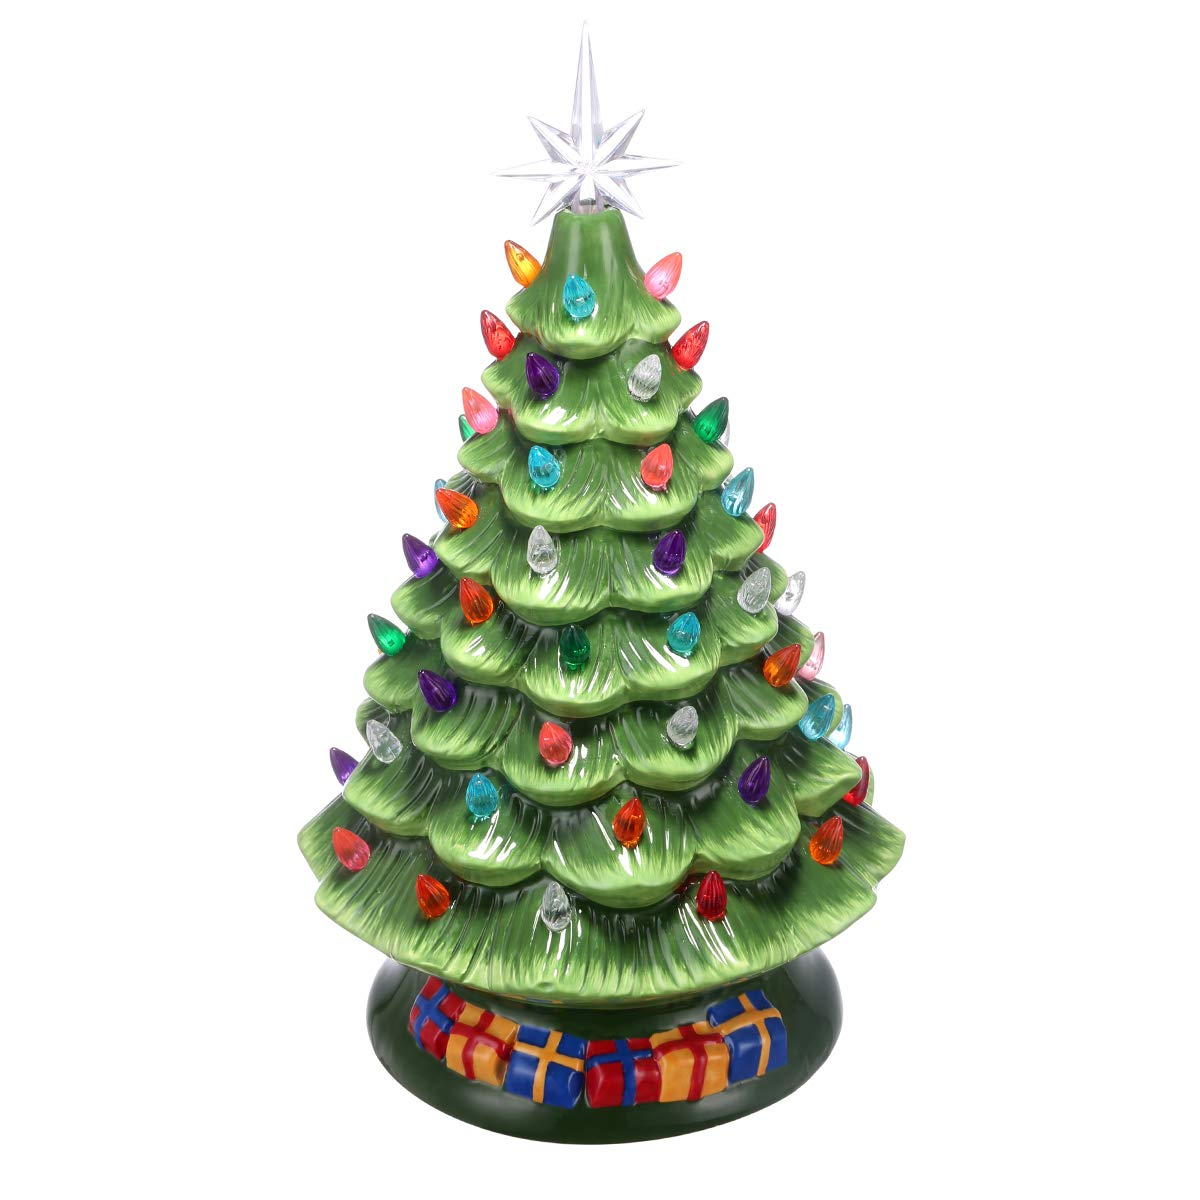 UNIFEEL 15in Pre-Lit Hand-Painted Ceramic Vintage Tabletop Artificial Christmas Tree Decor with 50 Multicolored Lights, Star Topper - Traditional Christmas Decoration Green by UNIFEEL